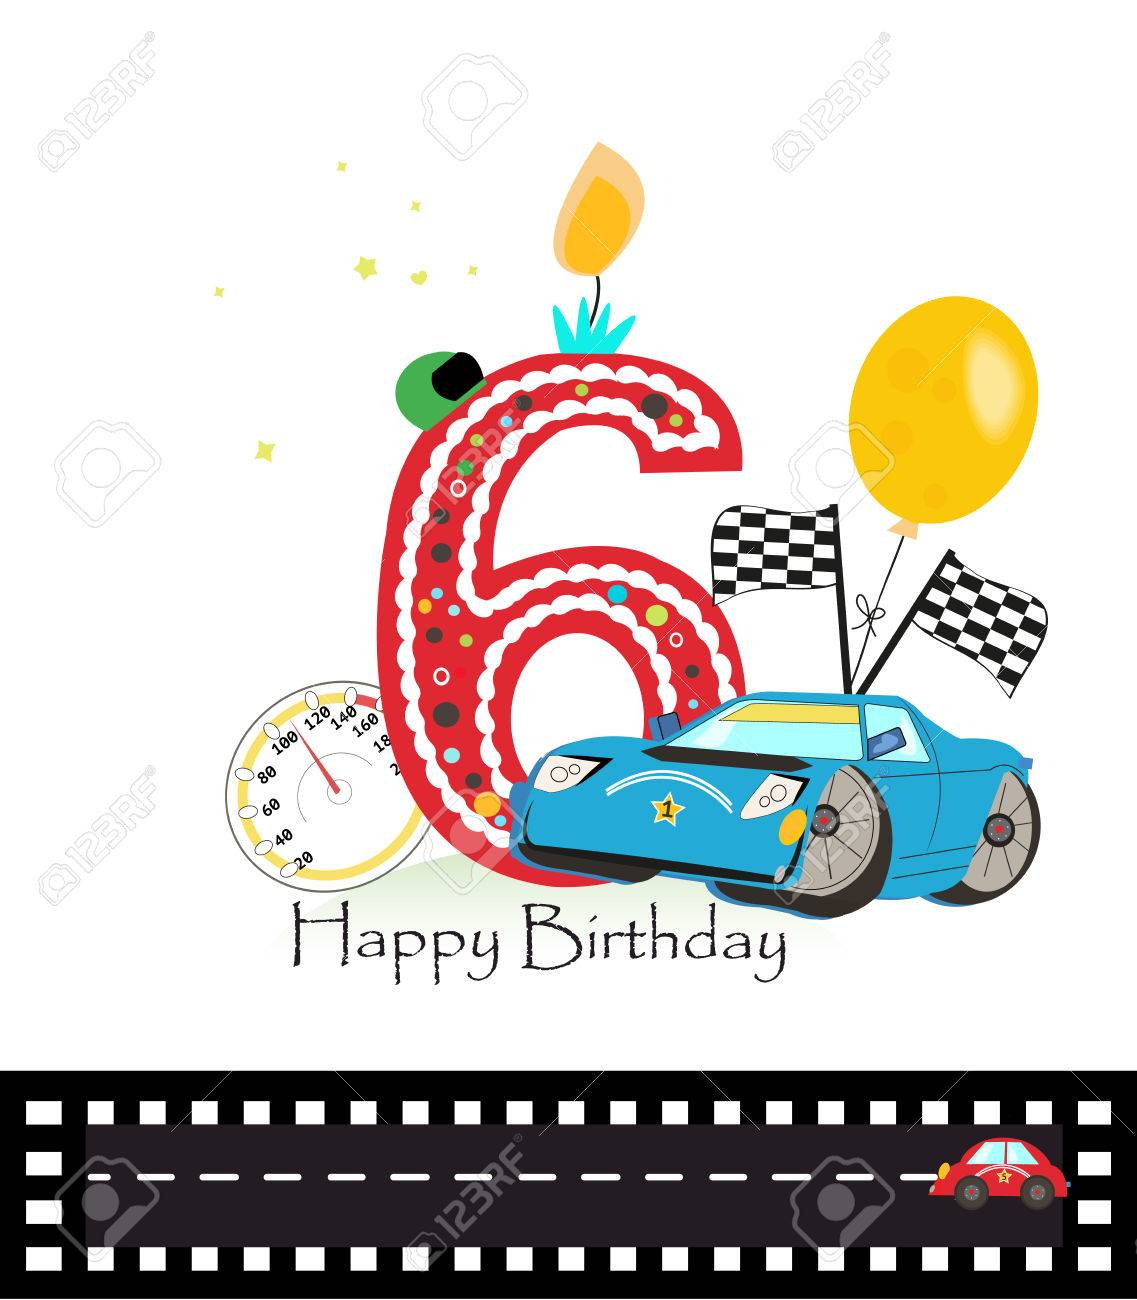 Happy Sixth Birthday Candle Baby Boy Greeting Card With Race Royalty Free Cliparts Vectors And Stock Illustration Image 72092031